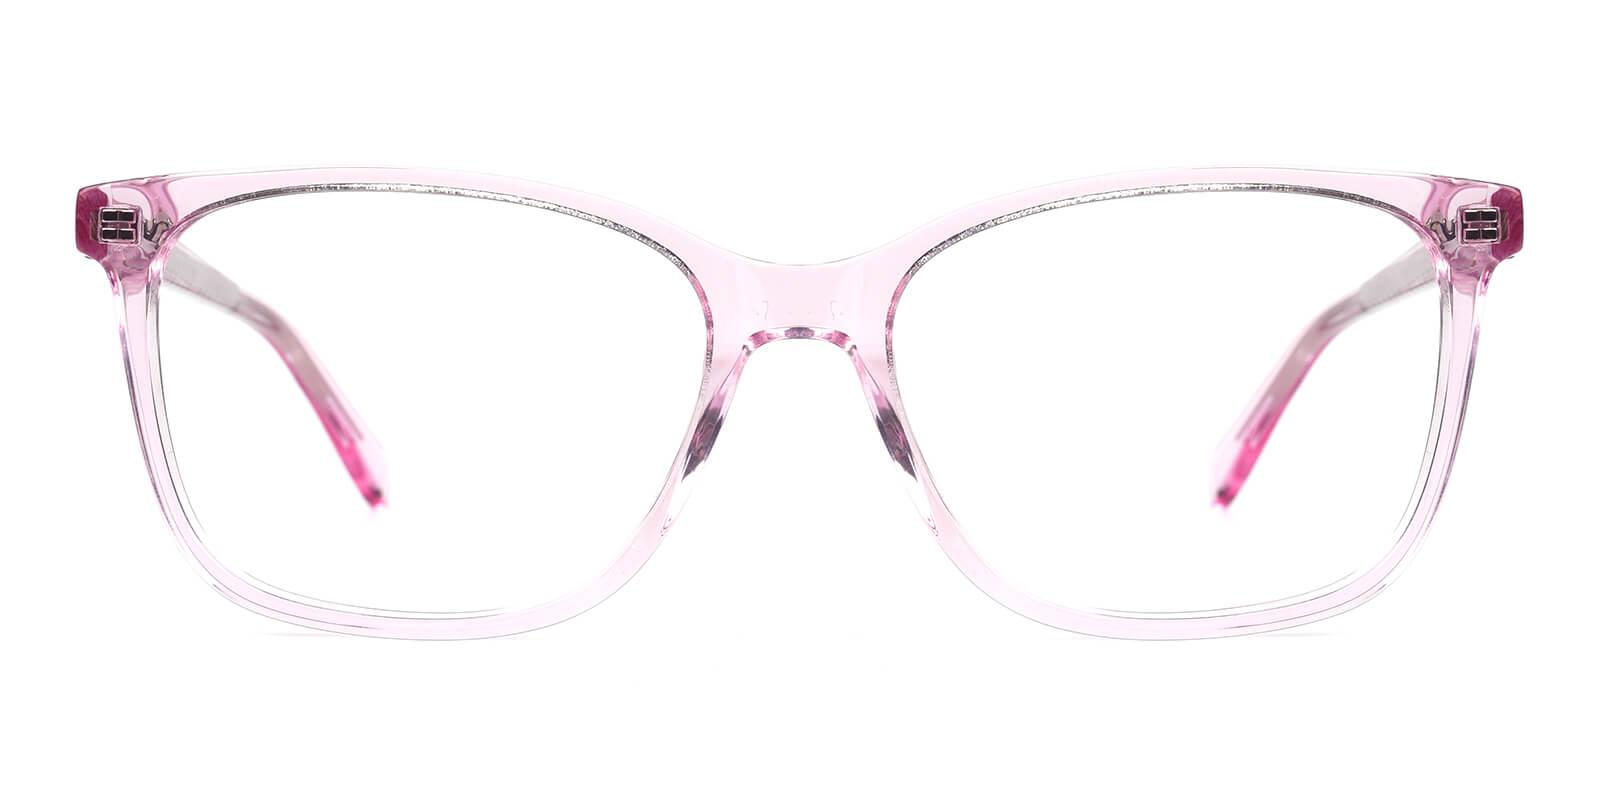 Defeny-Pink-Square-Acetate-Eyeglasses-additional2